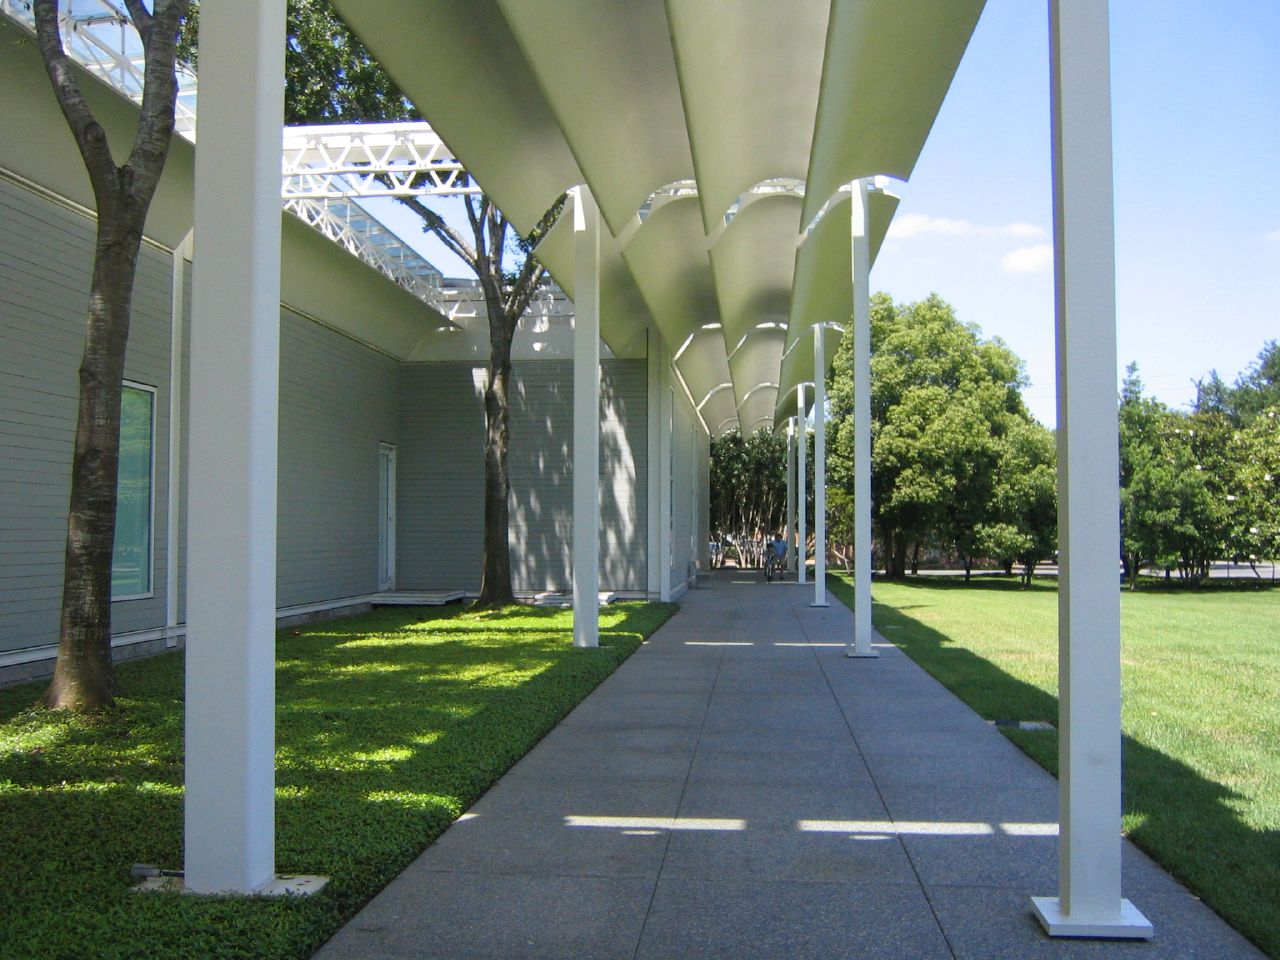 menil collection Menil collectionthe menil collection in houston displays the vast art collection of its founders, dominique and john de menilthe museum, which opened to the public on june 7, 1987, also hosts special exhibits, which include works on loan from other collections.